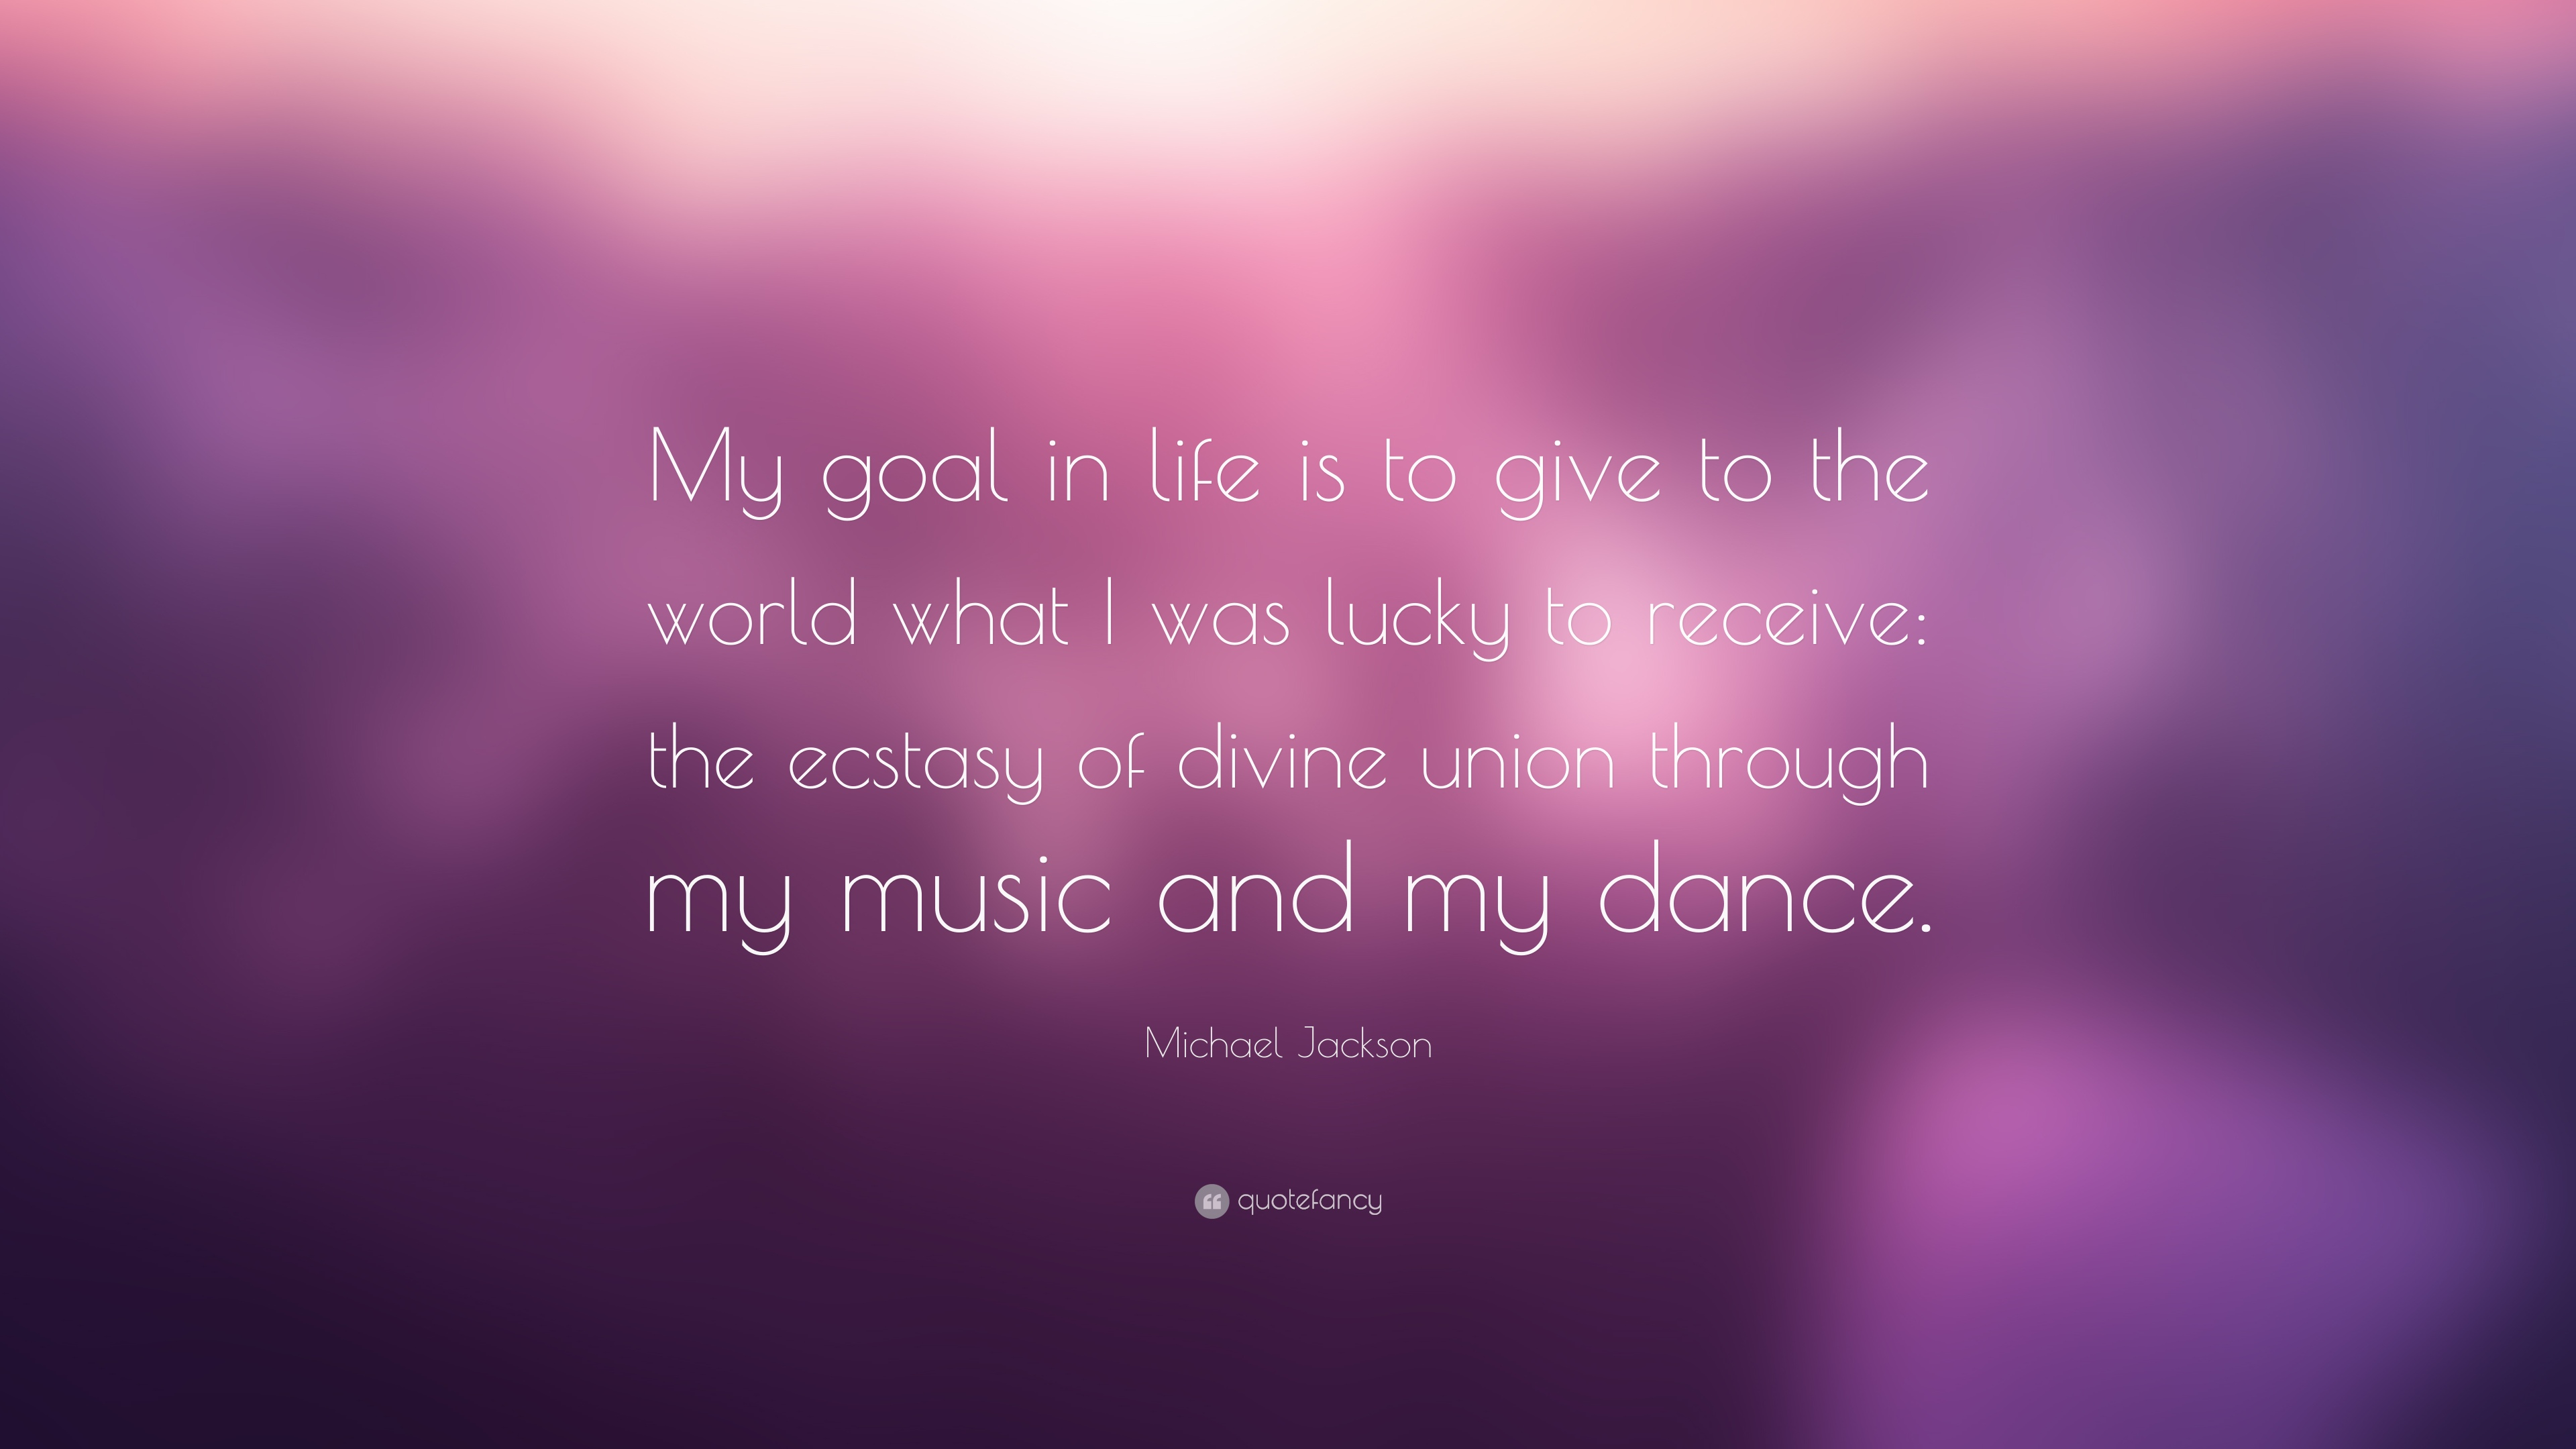 Quotes About Dance And Life Dance Quotes 40 Wallpapers  Quotefancy